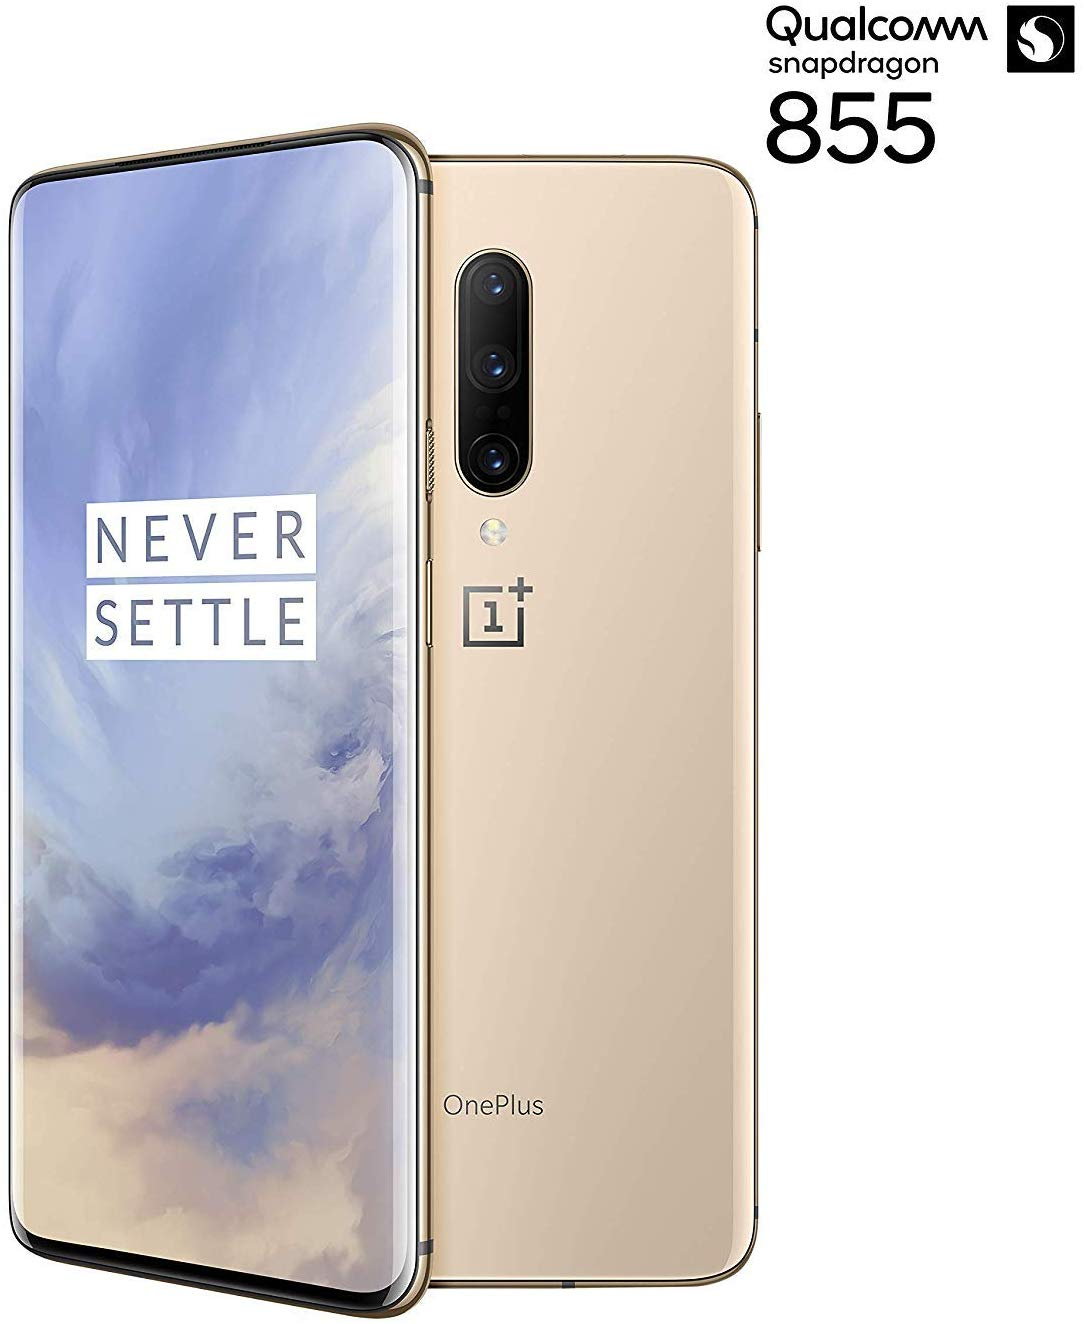 Phone OnePlus 7 Pro, Almond Color Gold, 256 GB Internal Memory 8 GB Of RAM, Dual Sim, AMOLED Screen 6,67